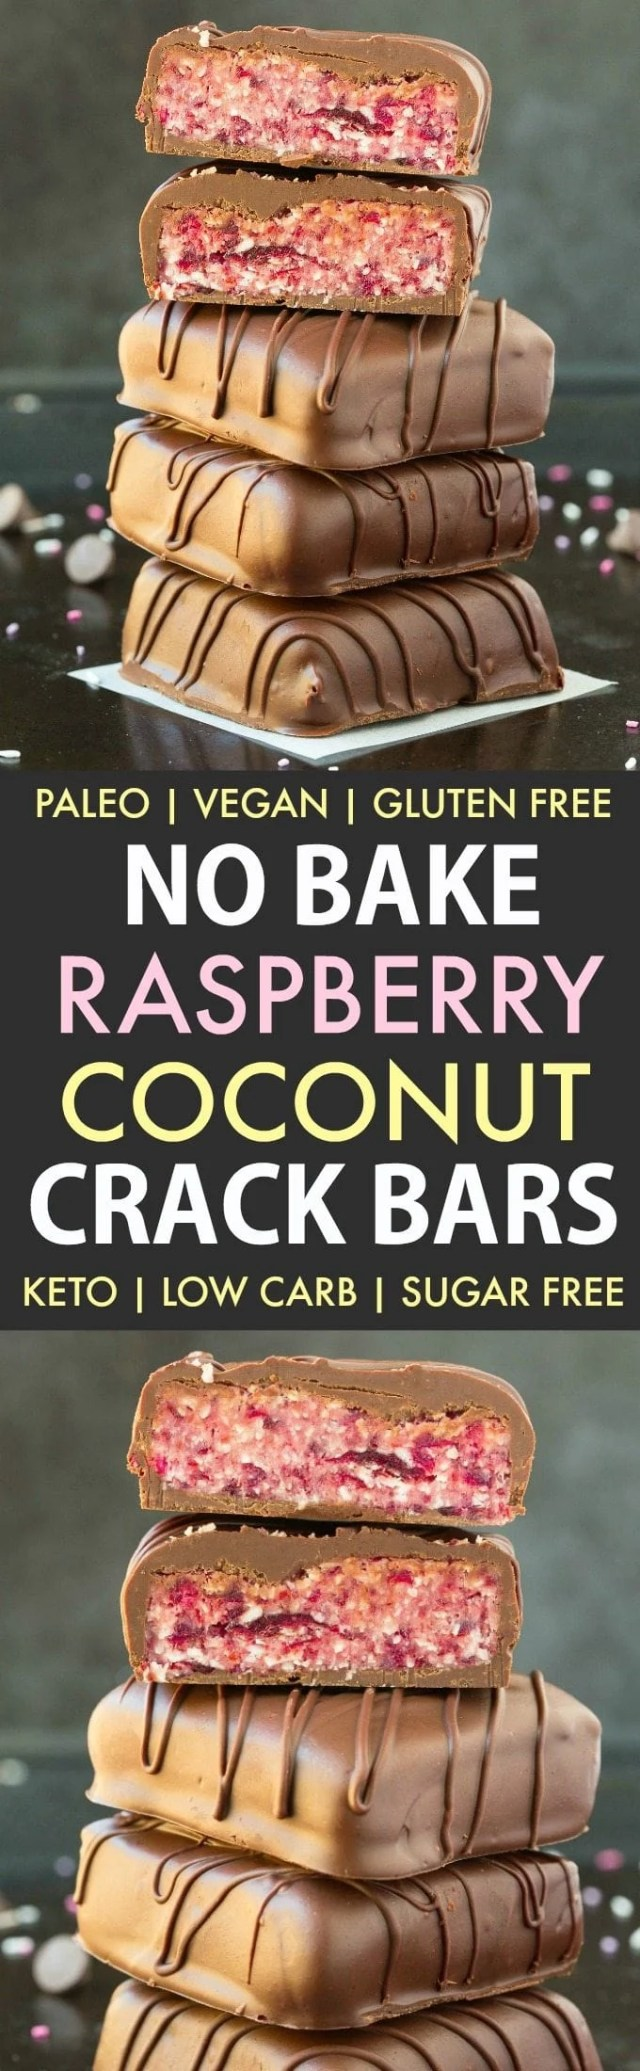 No Bake Raspberry Coconut Chocolate Crack Bars (Paleo, Vegan, Keto, Sugar Free, Gluten Free)- Easy, healthy and seriously addictive raspberry coconut candy bars using ready in 5 minutes! The Perfect snack or dessert to satisfy the sweet tooth! #keto #ketodessert #coconut #raspberry #healthy #nobake | Recipe on thebigmansworld.com